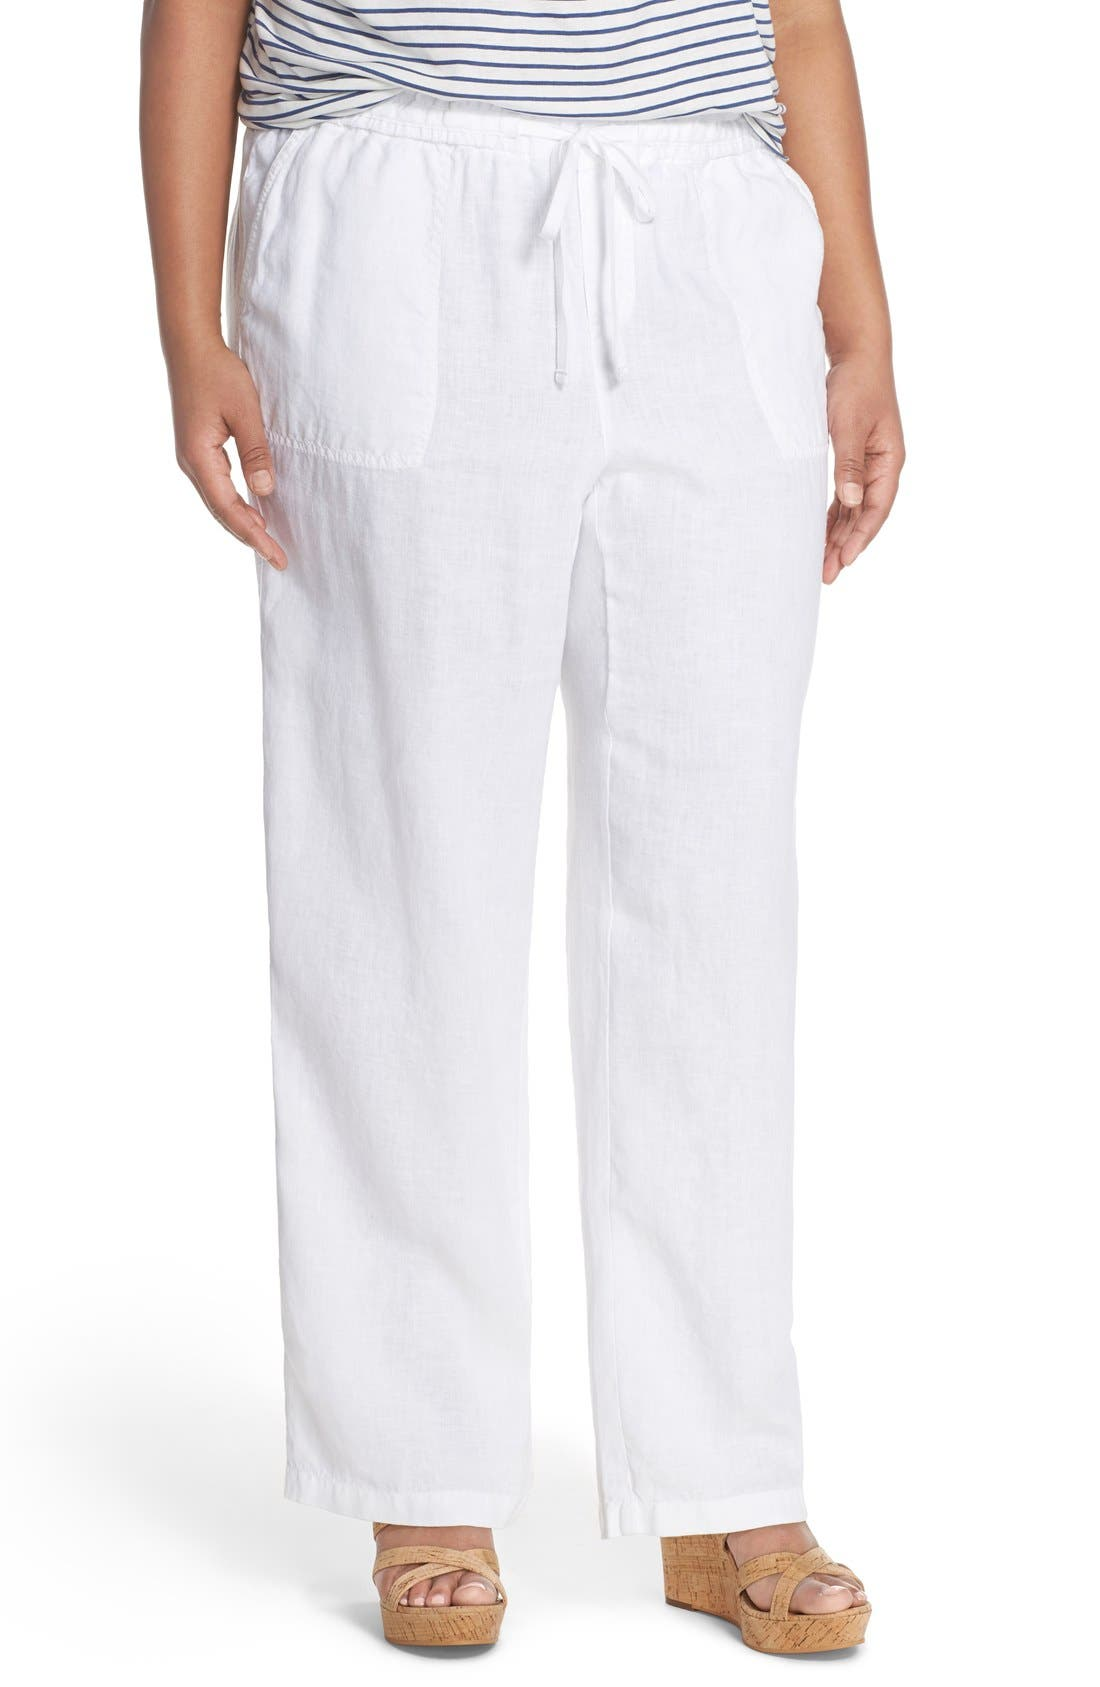 Alternate Image 1 Selected - Caslon® Drawstring Linen Pants (Plus Size)